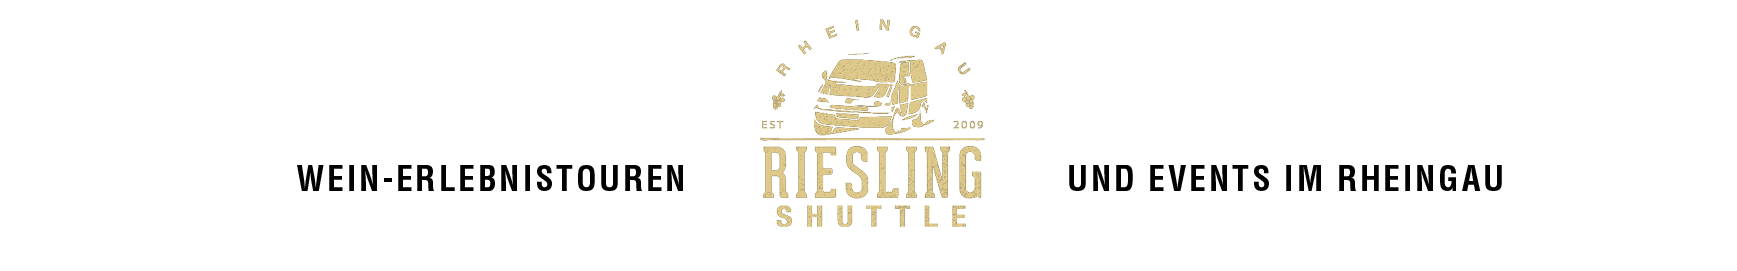 Riesling Shuttle Gold Weintouren Events pos